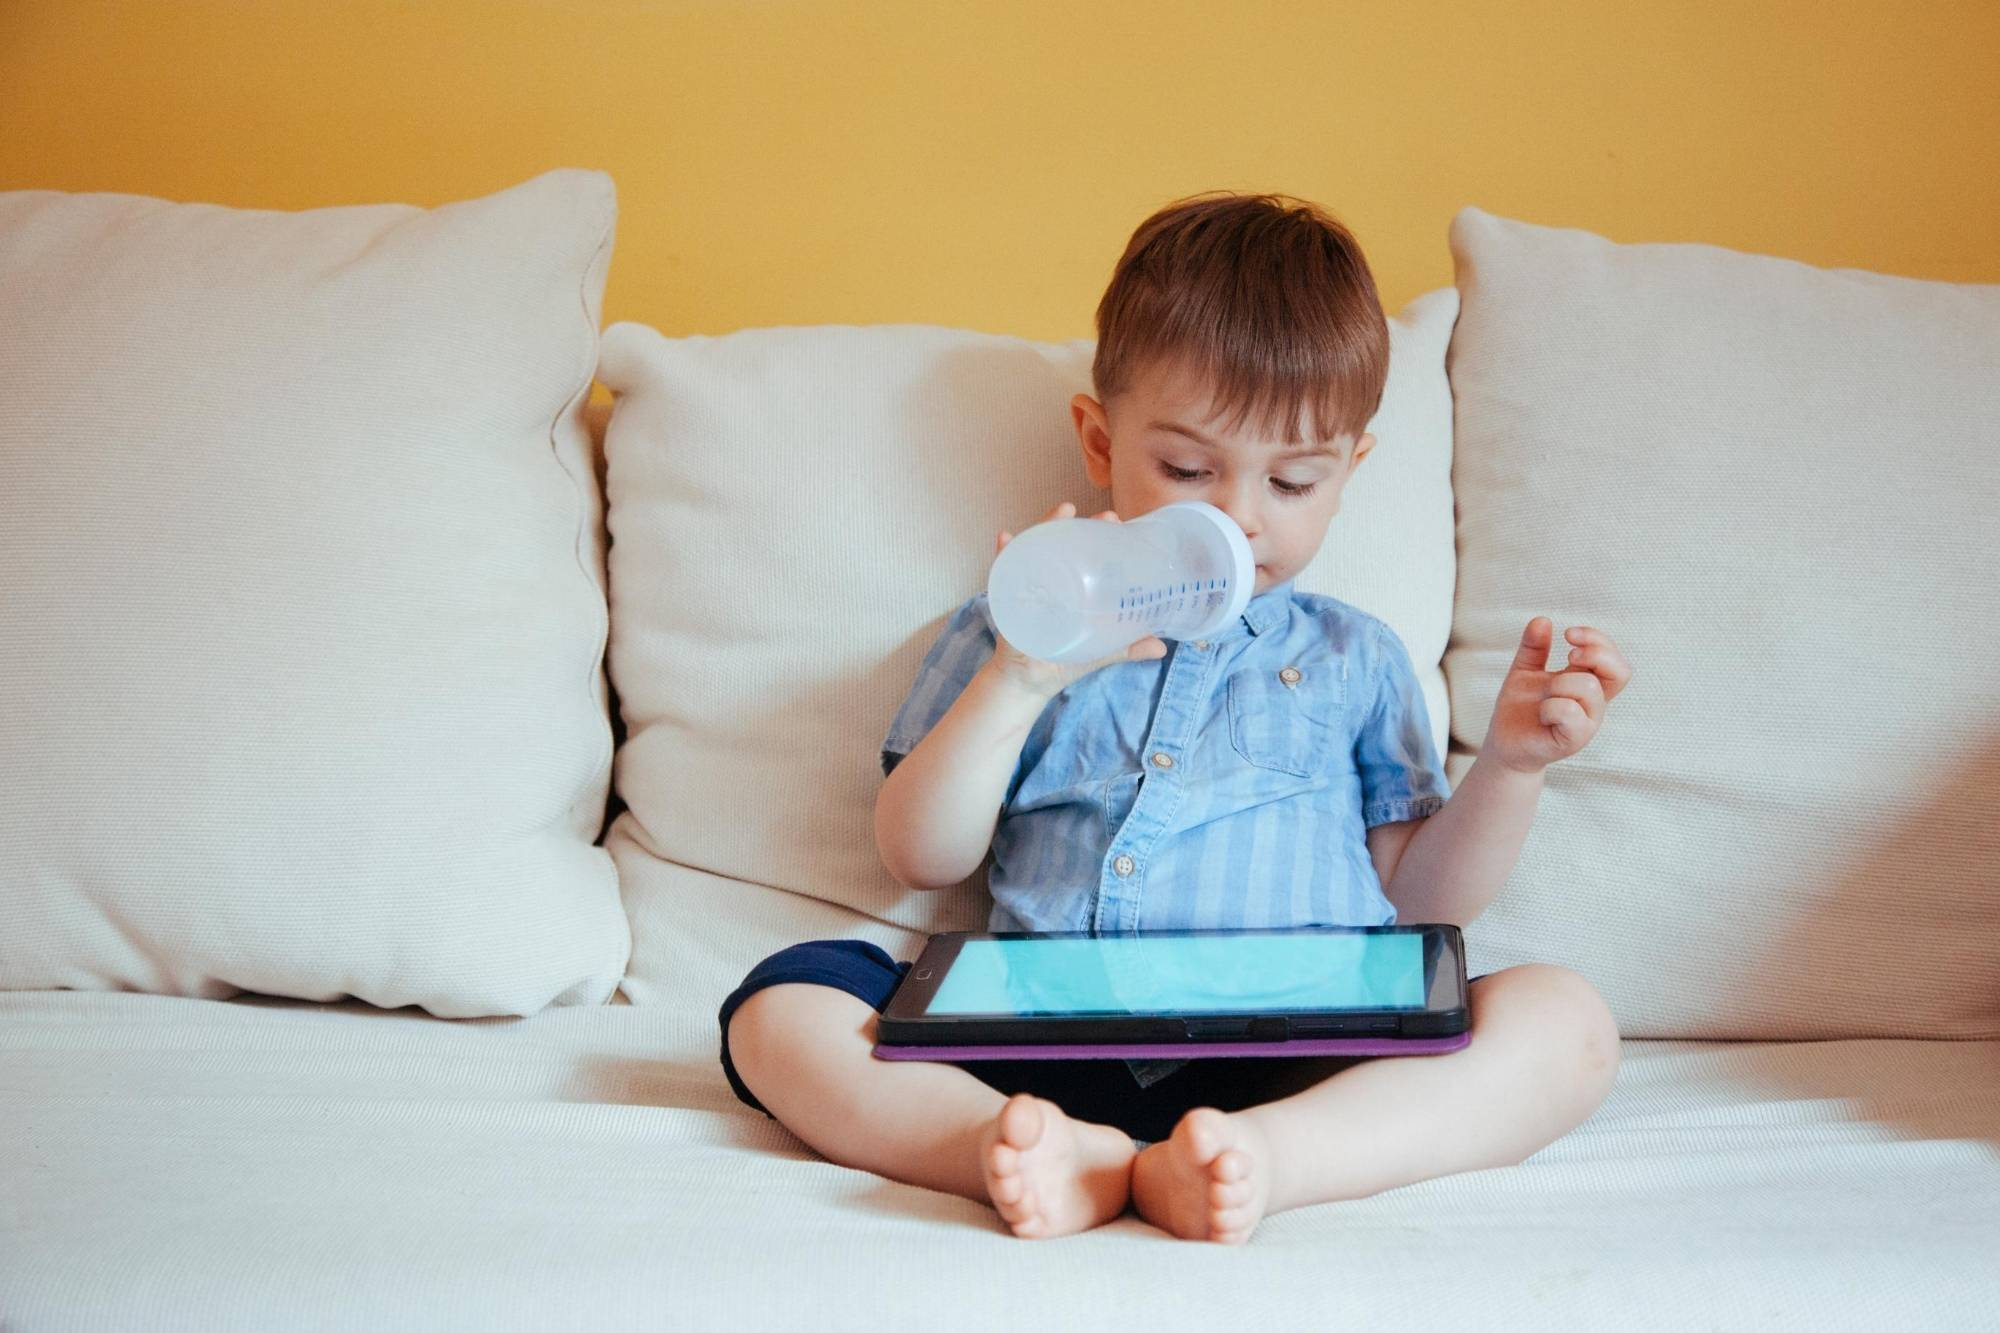 Child sitting on a white sofa looking at an iPad screen while drinking from his bottle